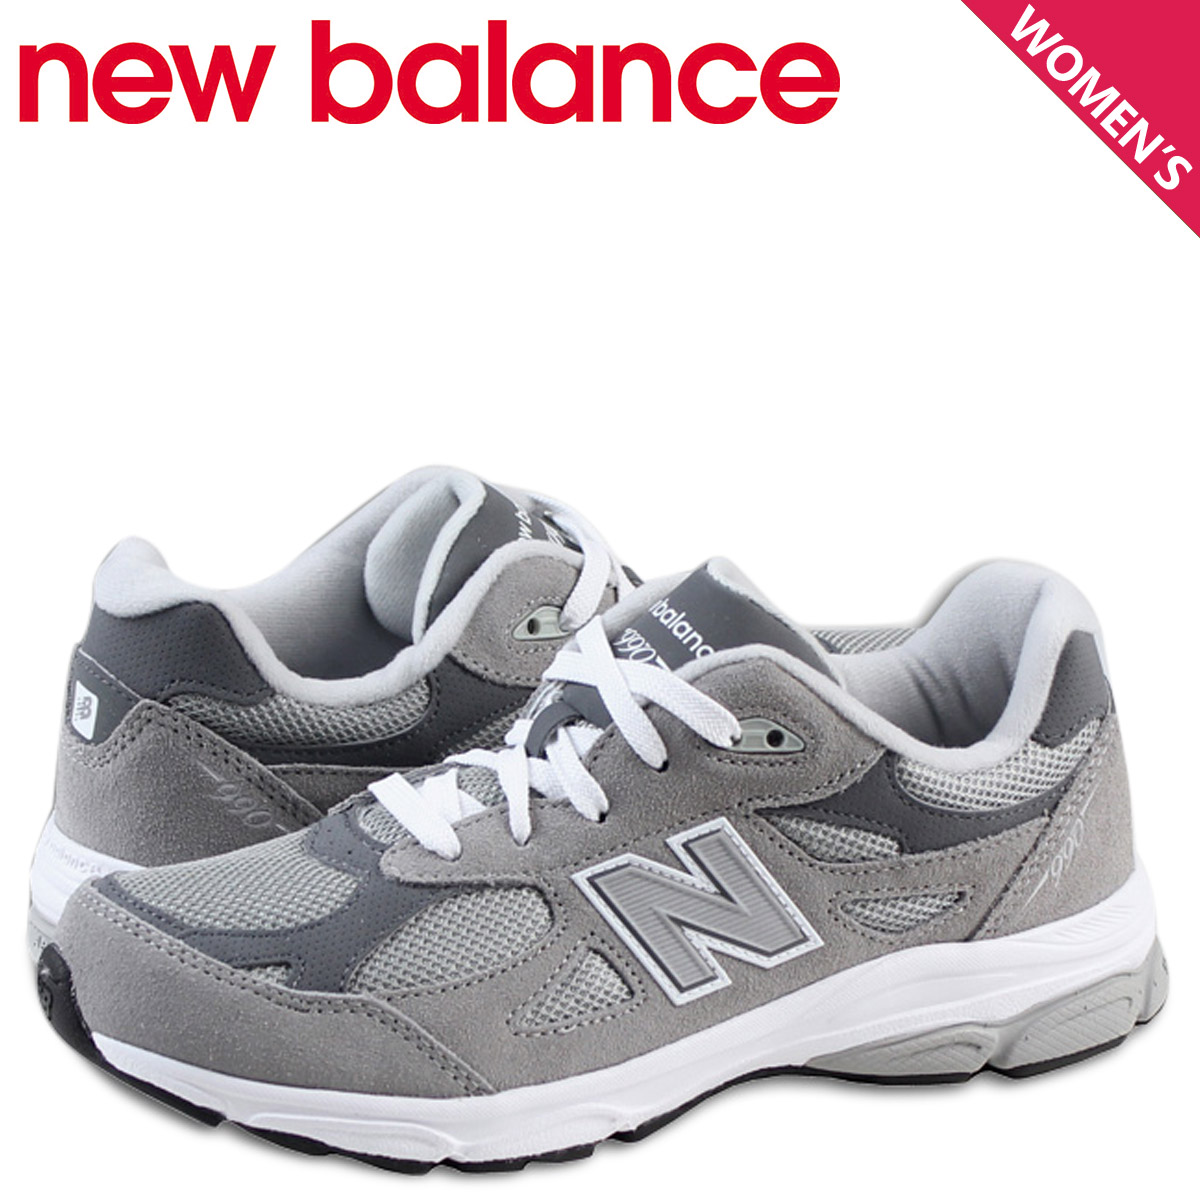 timeless design 177e2 86c5f New Balance new balance 990 kids Lady's sneakers KJ990GRG M Wise gray